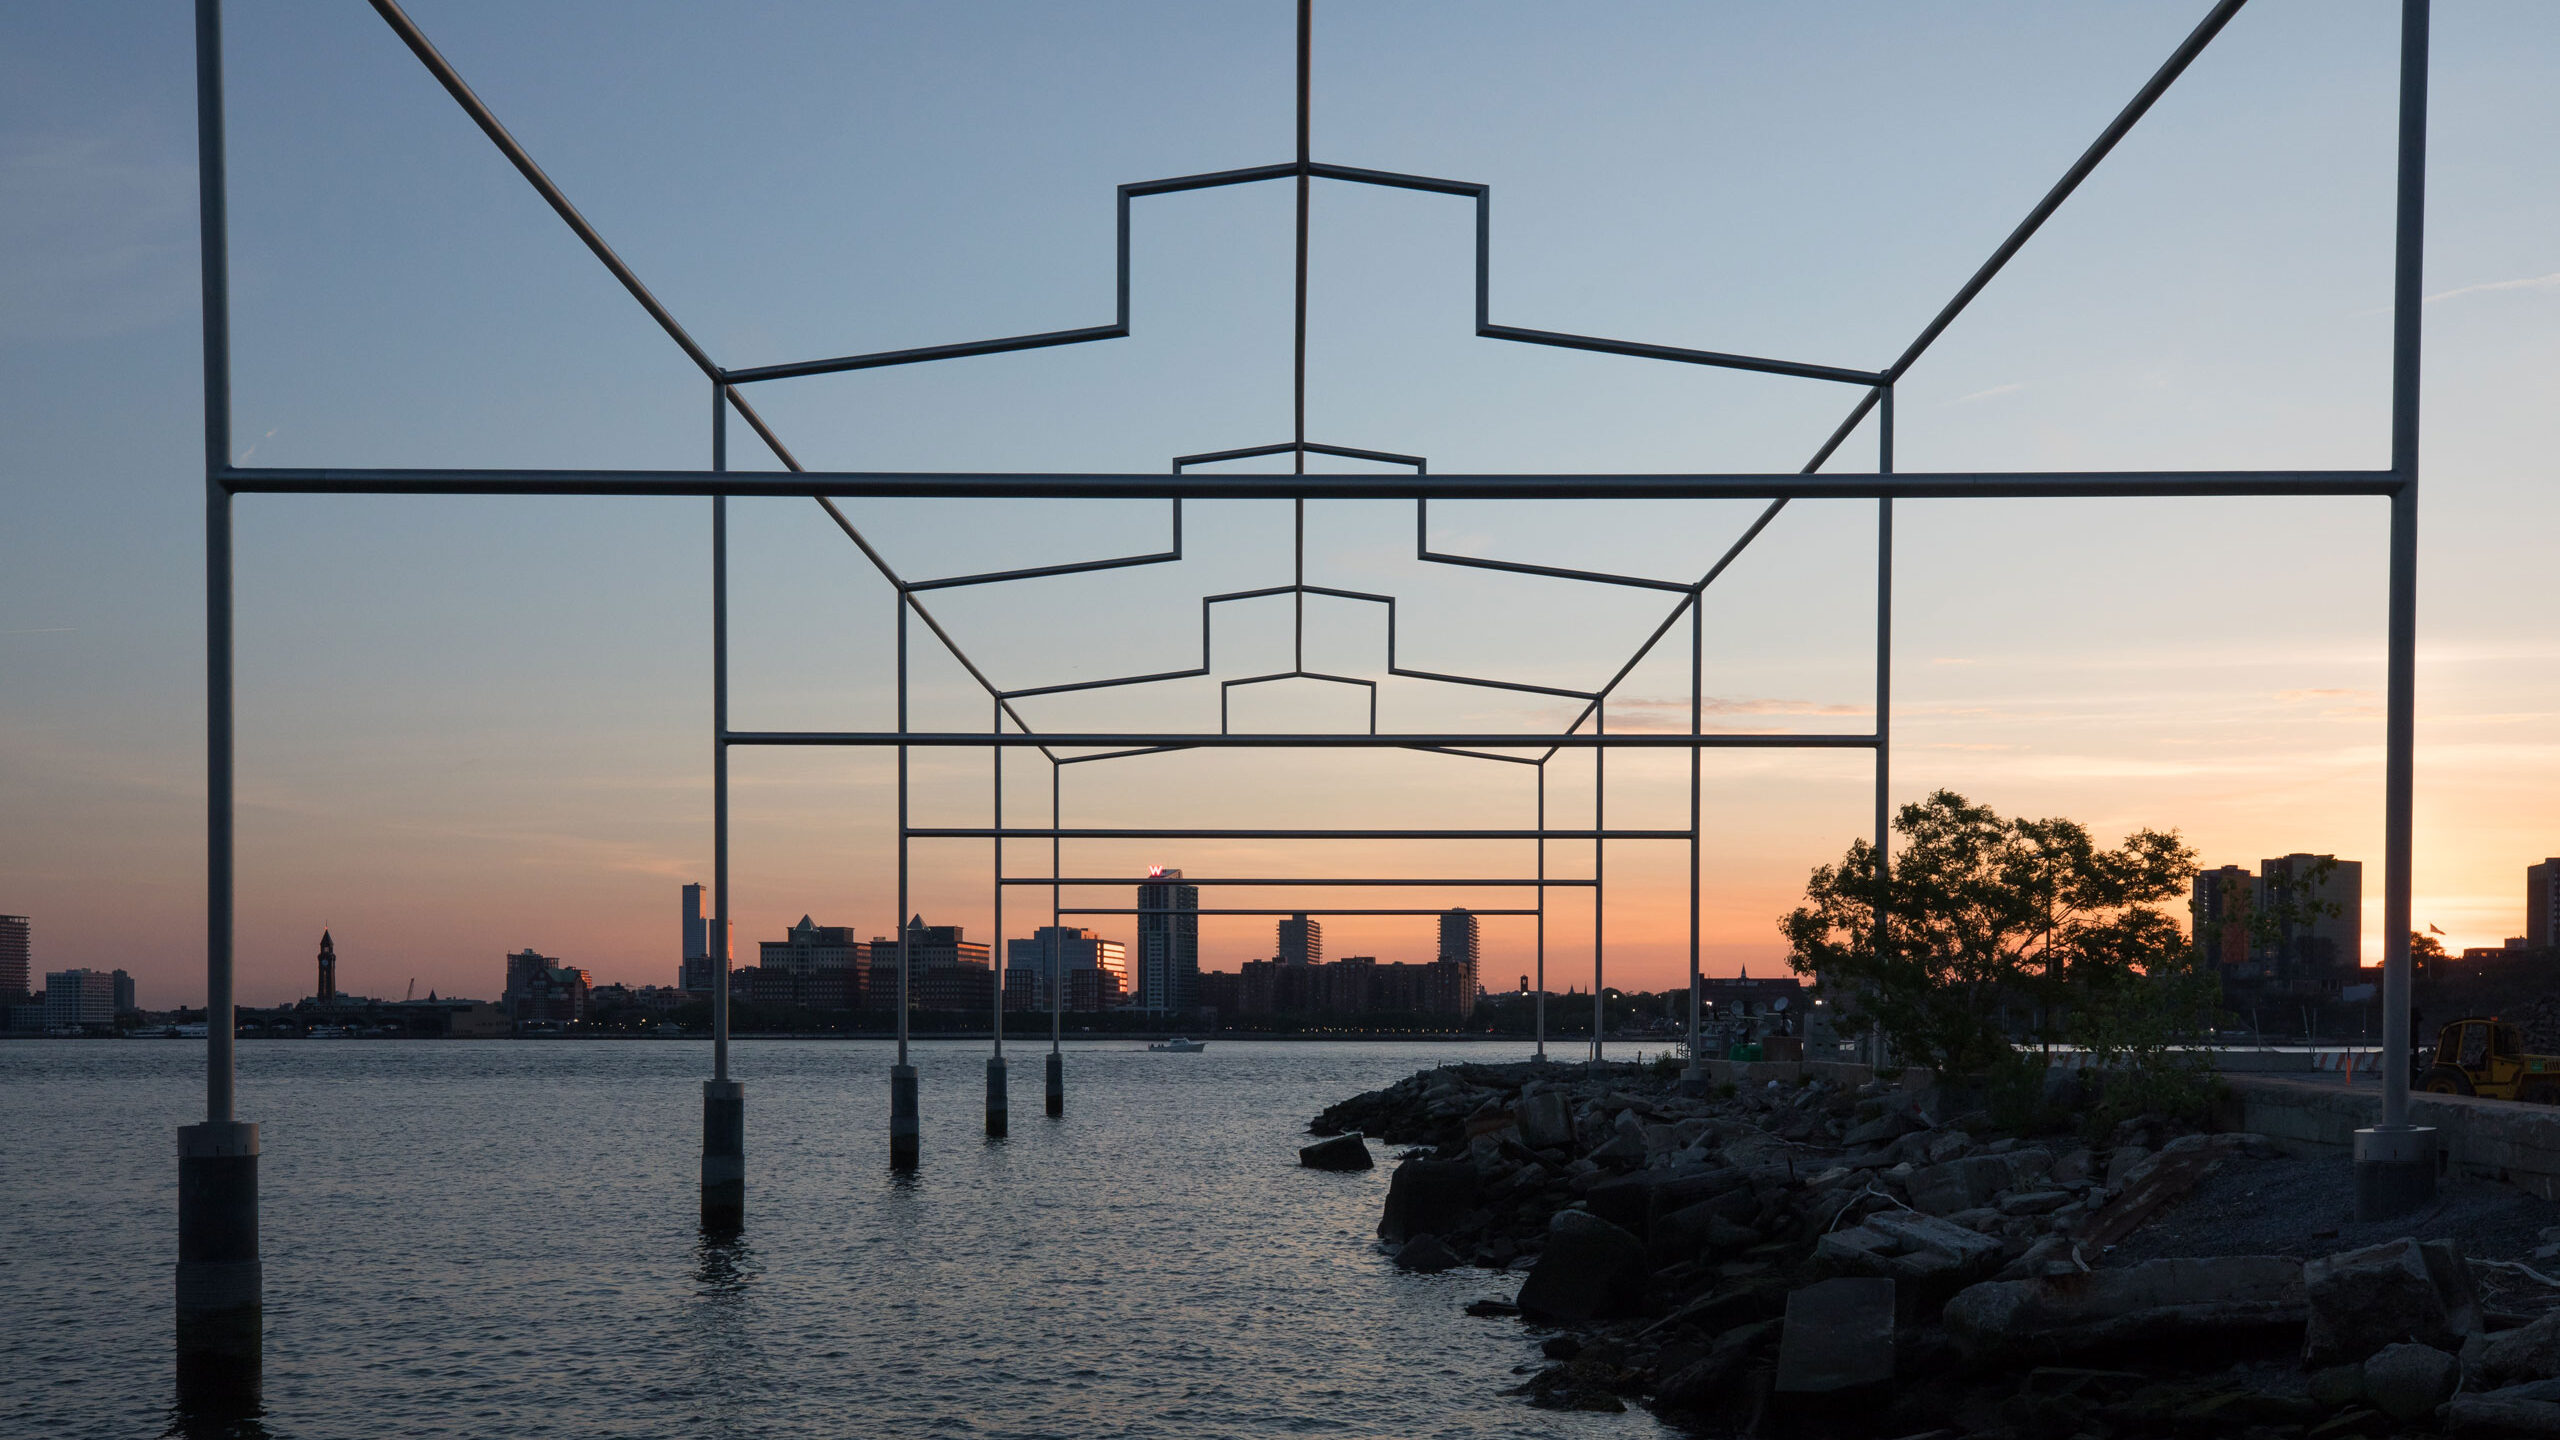 Day's End by David Hammons, a gift from the Whitney Museum, sits on the Hudson River at sunset